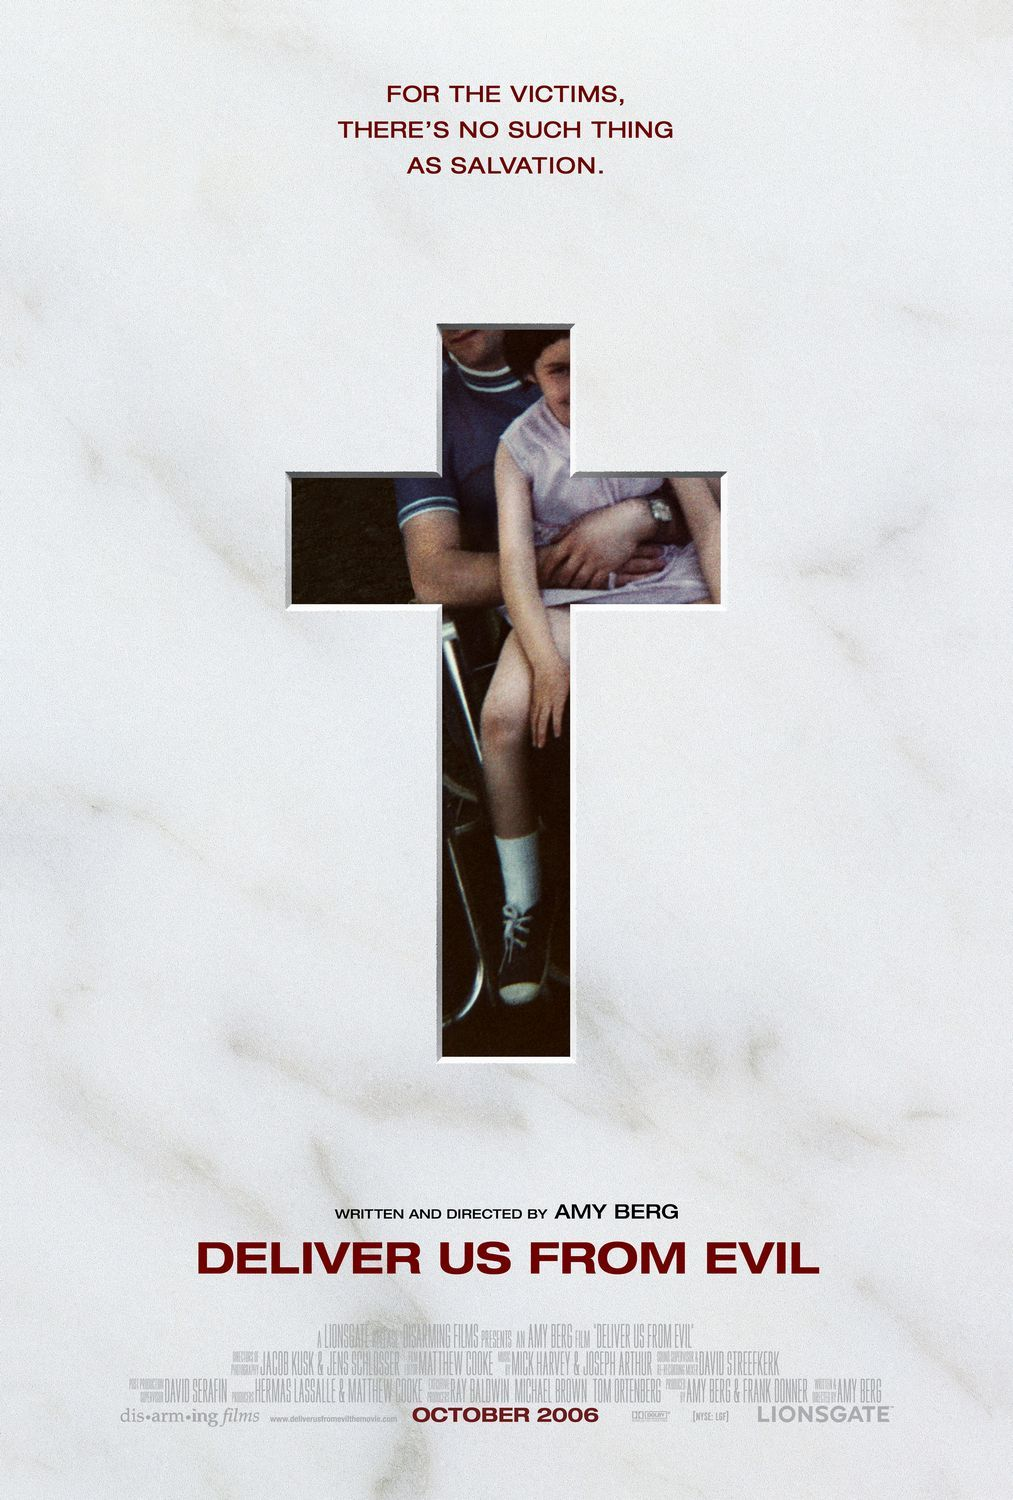 Yet another Netflix documentary pointing out how awful human beings are, especially to other human beings. This one is about abusive priests and the children they abused - and how the Catholic Church covers it up and ensures their priests remain unconvicted. One of the priests is so horrifically candid about what he did to the girls he molested (at one point interviewed as he strolls past a child's playground) he is either utterly convinced the church will protect him, or he is unhinged.